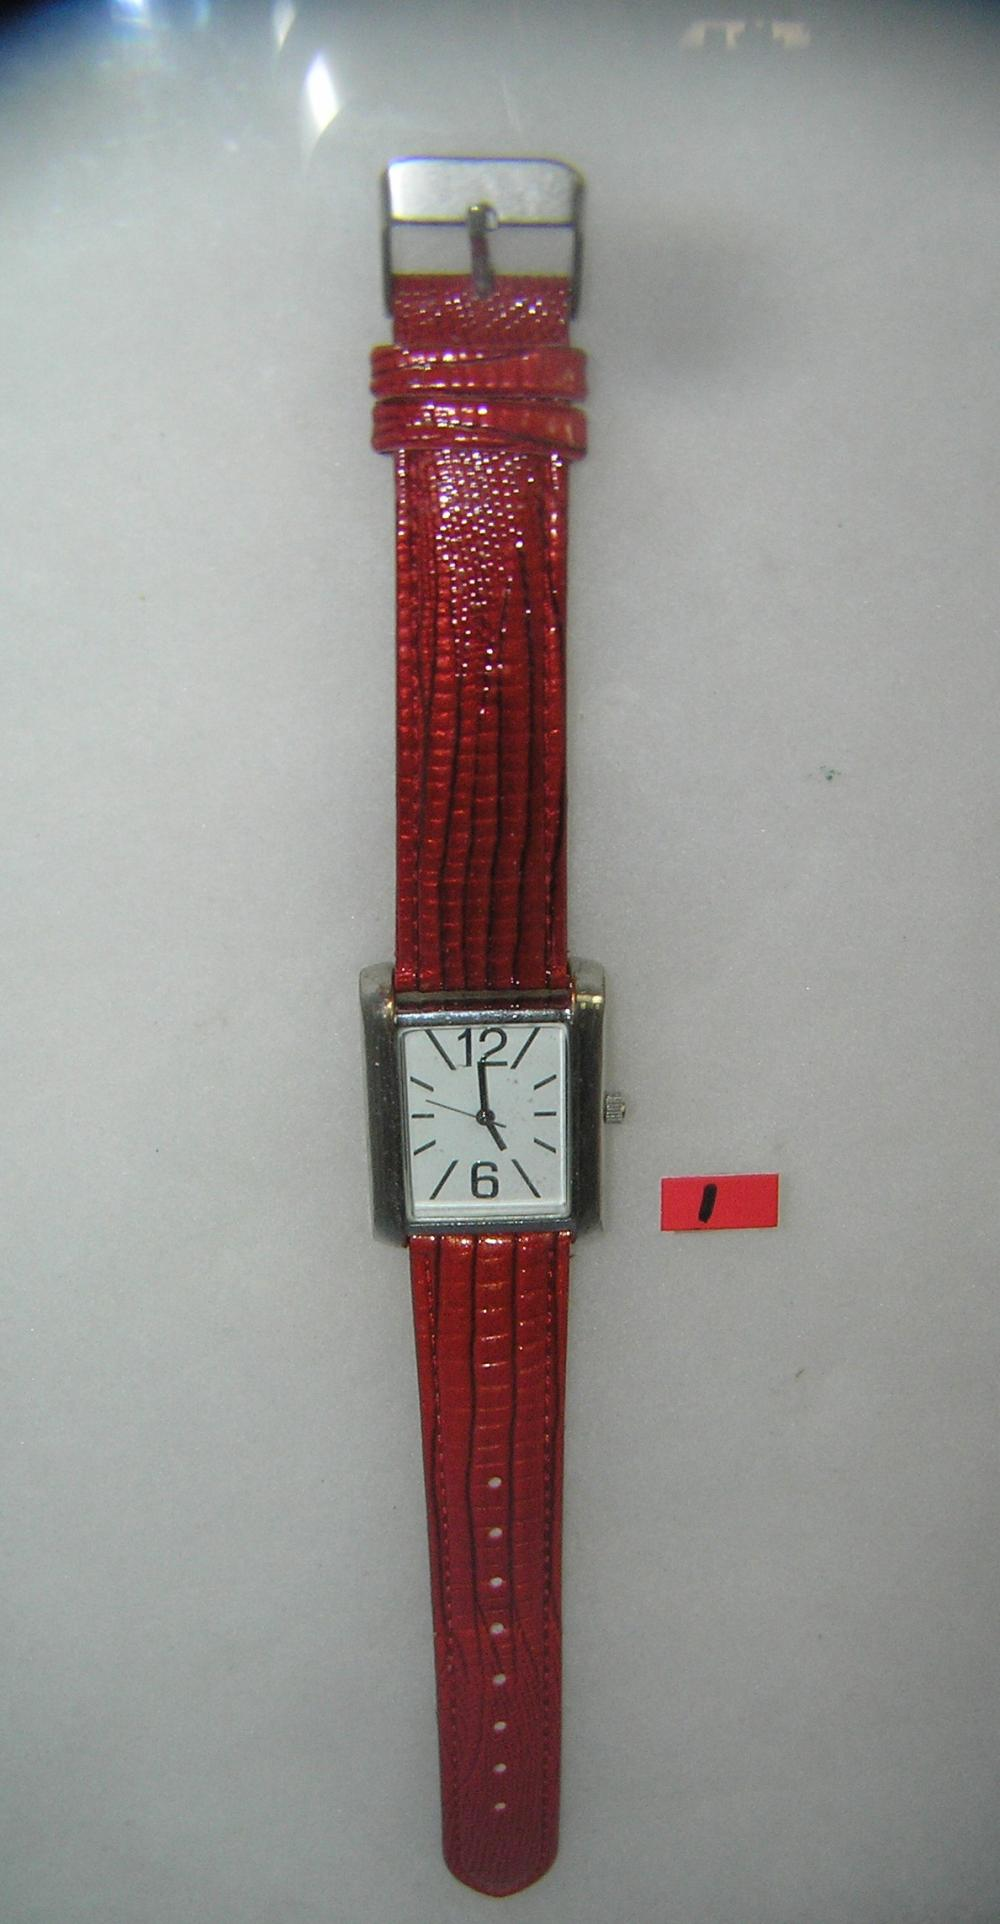 FASHION STYLE WRIST WATCH WITH MAROON LEATHER BAND